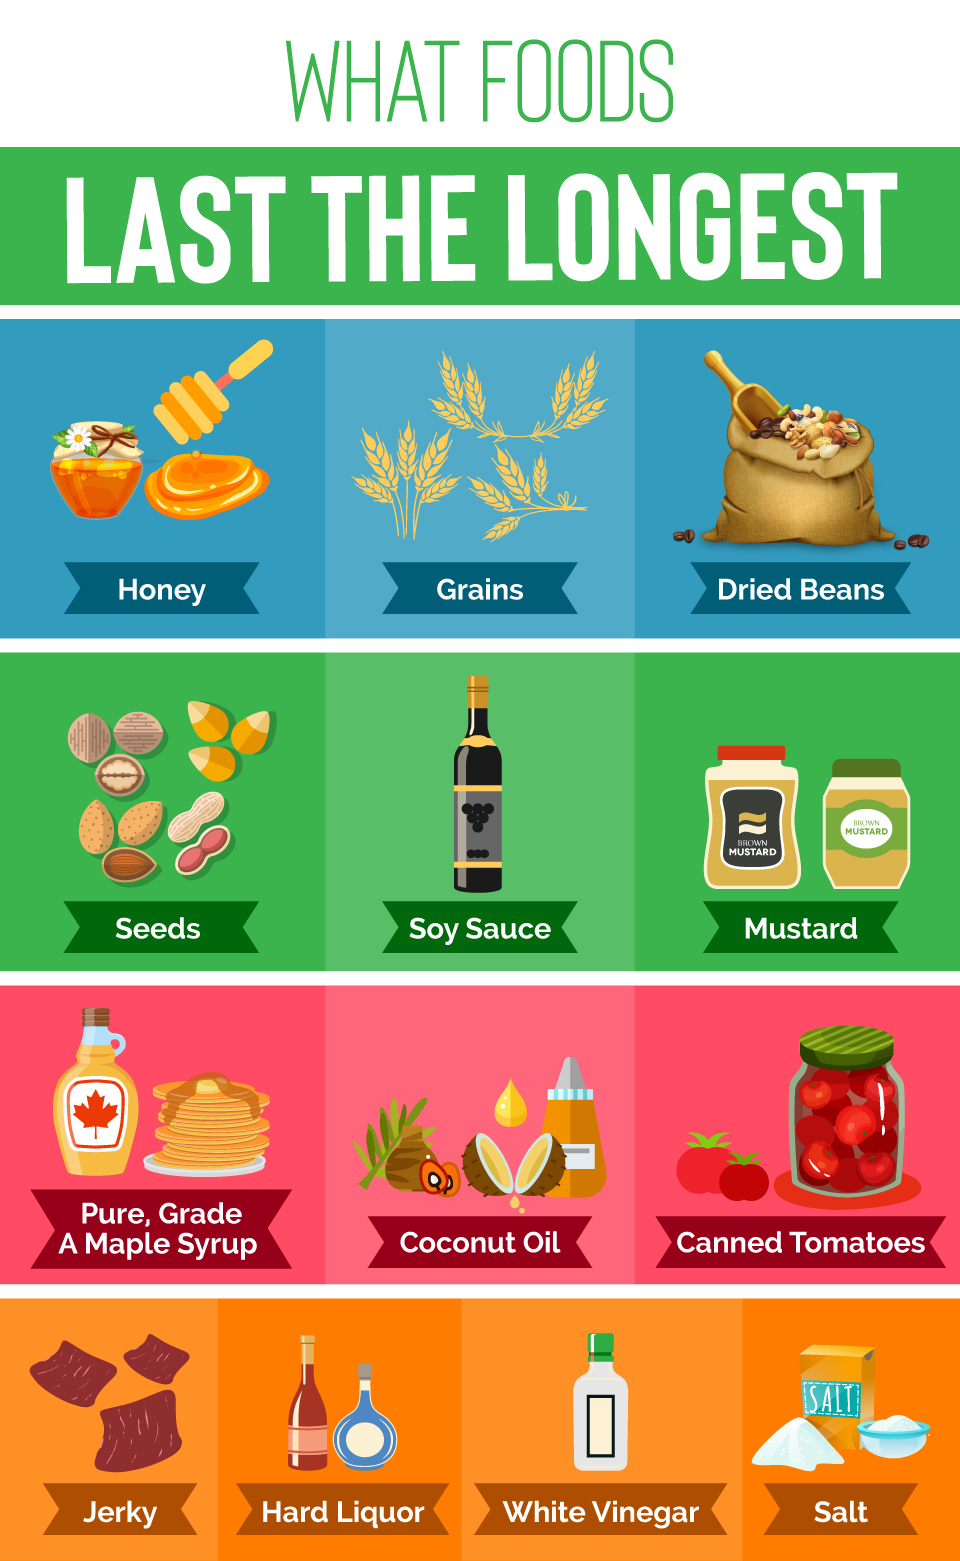 What Foods Last the Longest